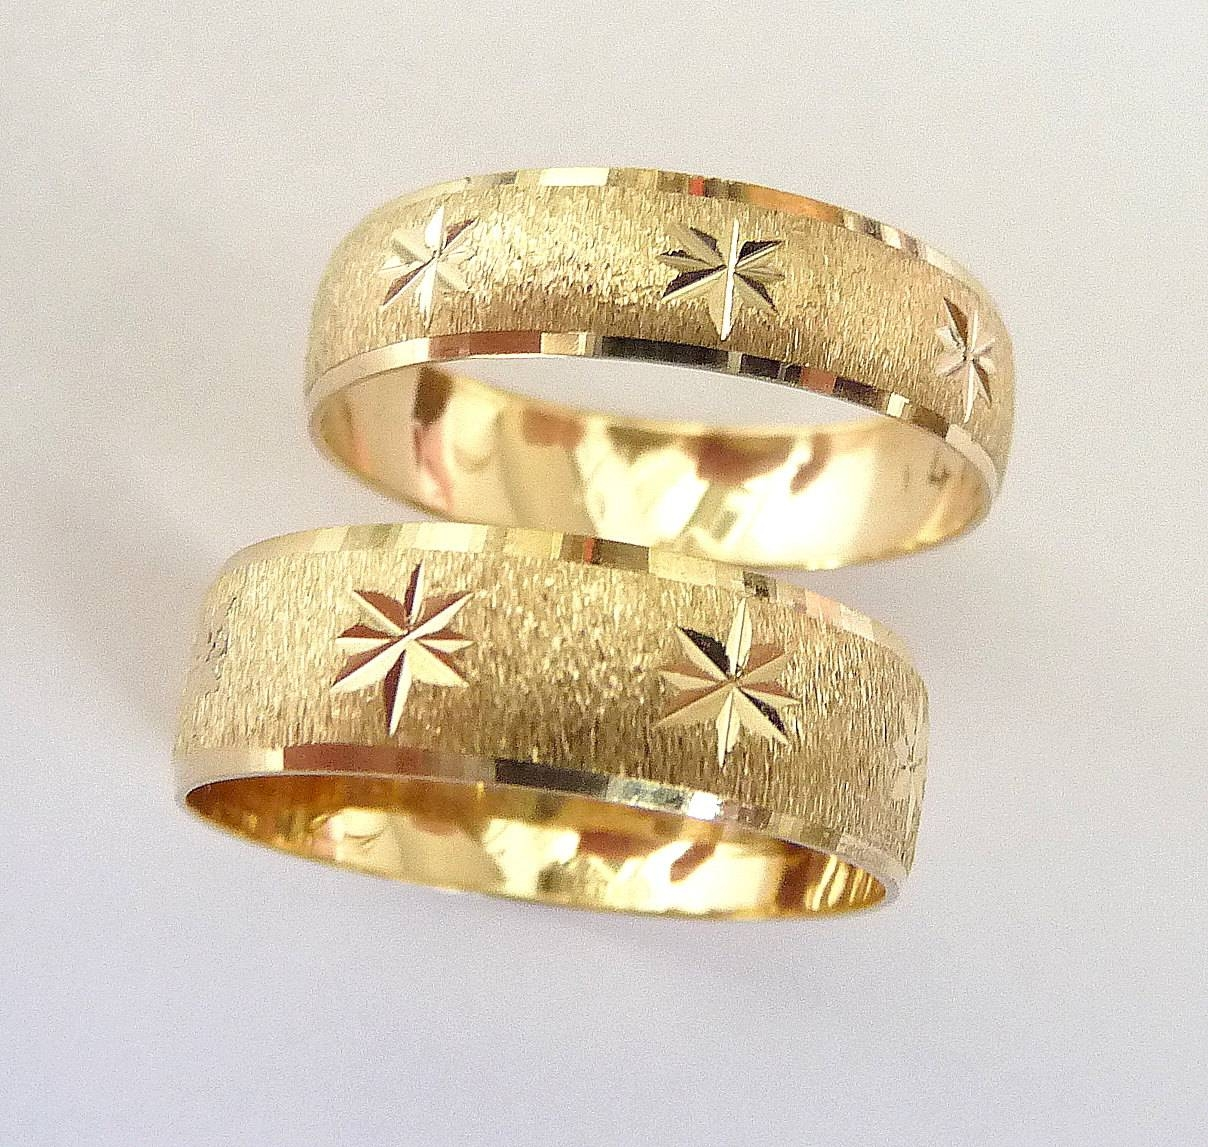 Wedding Rings Set Gold Men And Women Wedding Bands With Stars With Regard To Gold Wedding Rings For Women (View 13 of 15)